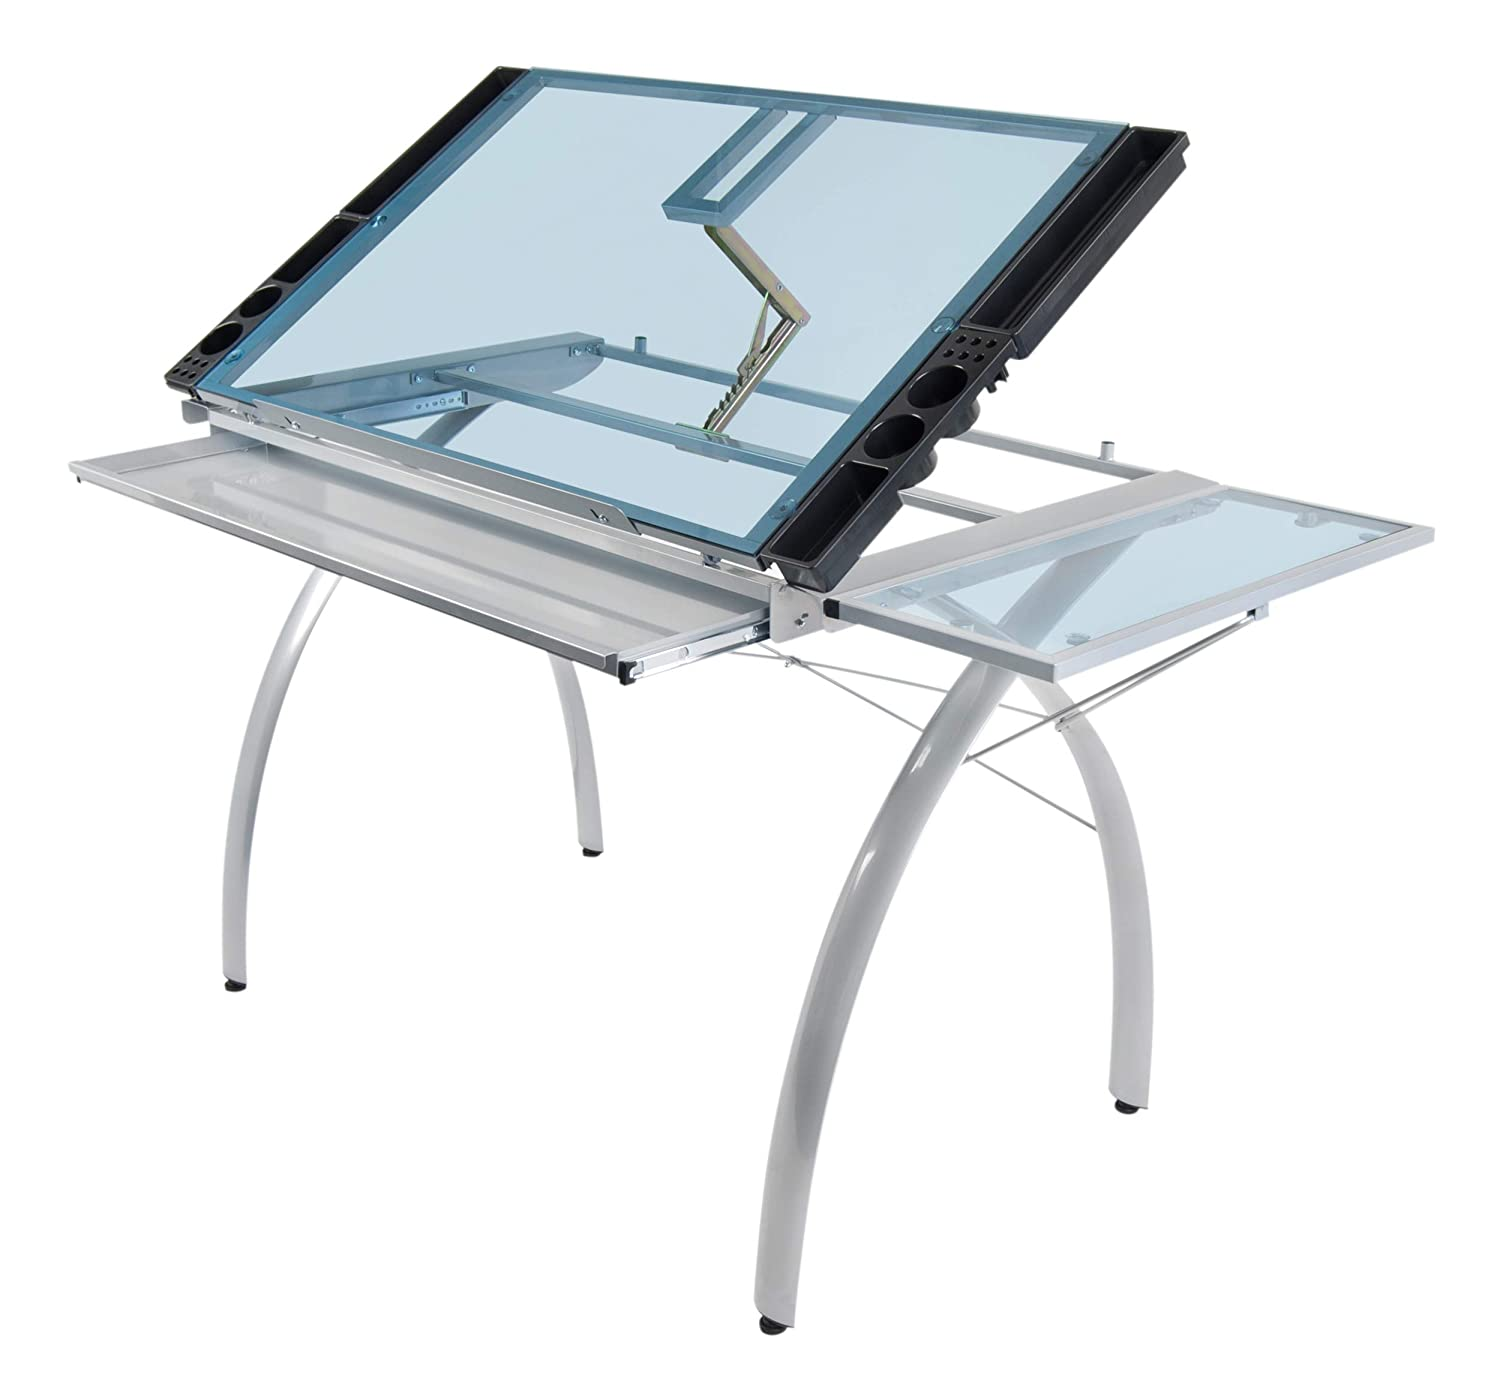 Studio Designs 10095 Futura Station with Folding Shelf Top Adjustable Drafting Craft Drawing Hobby Table Writing Studio Desk with Drawer, 35.5'' W x 23.75'' D, Silver/Blue Glass